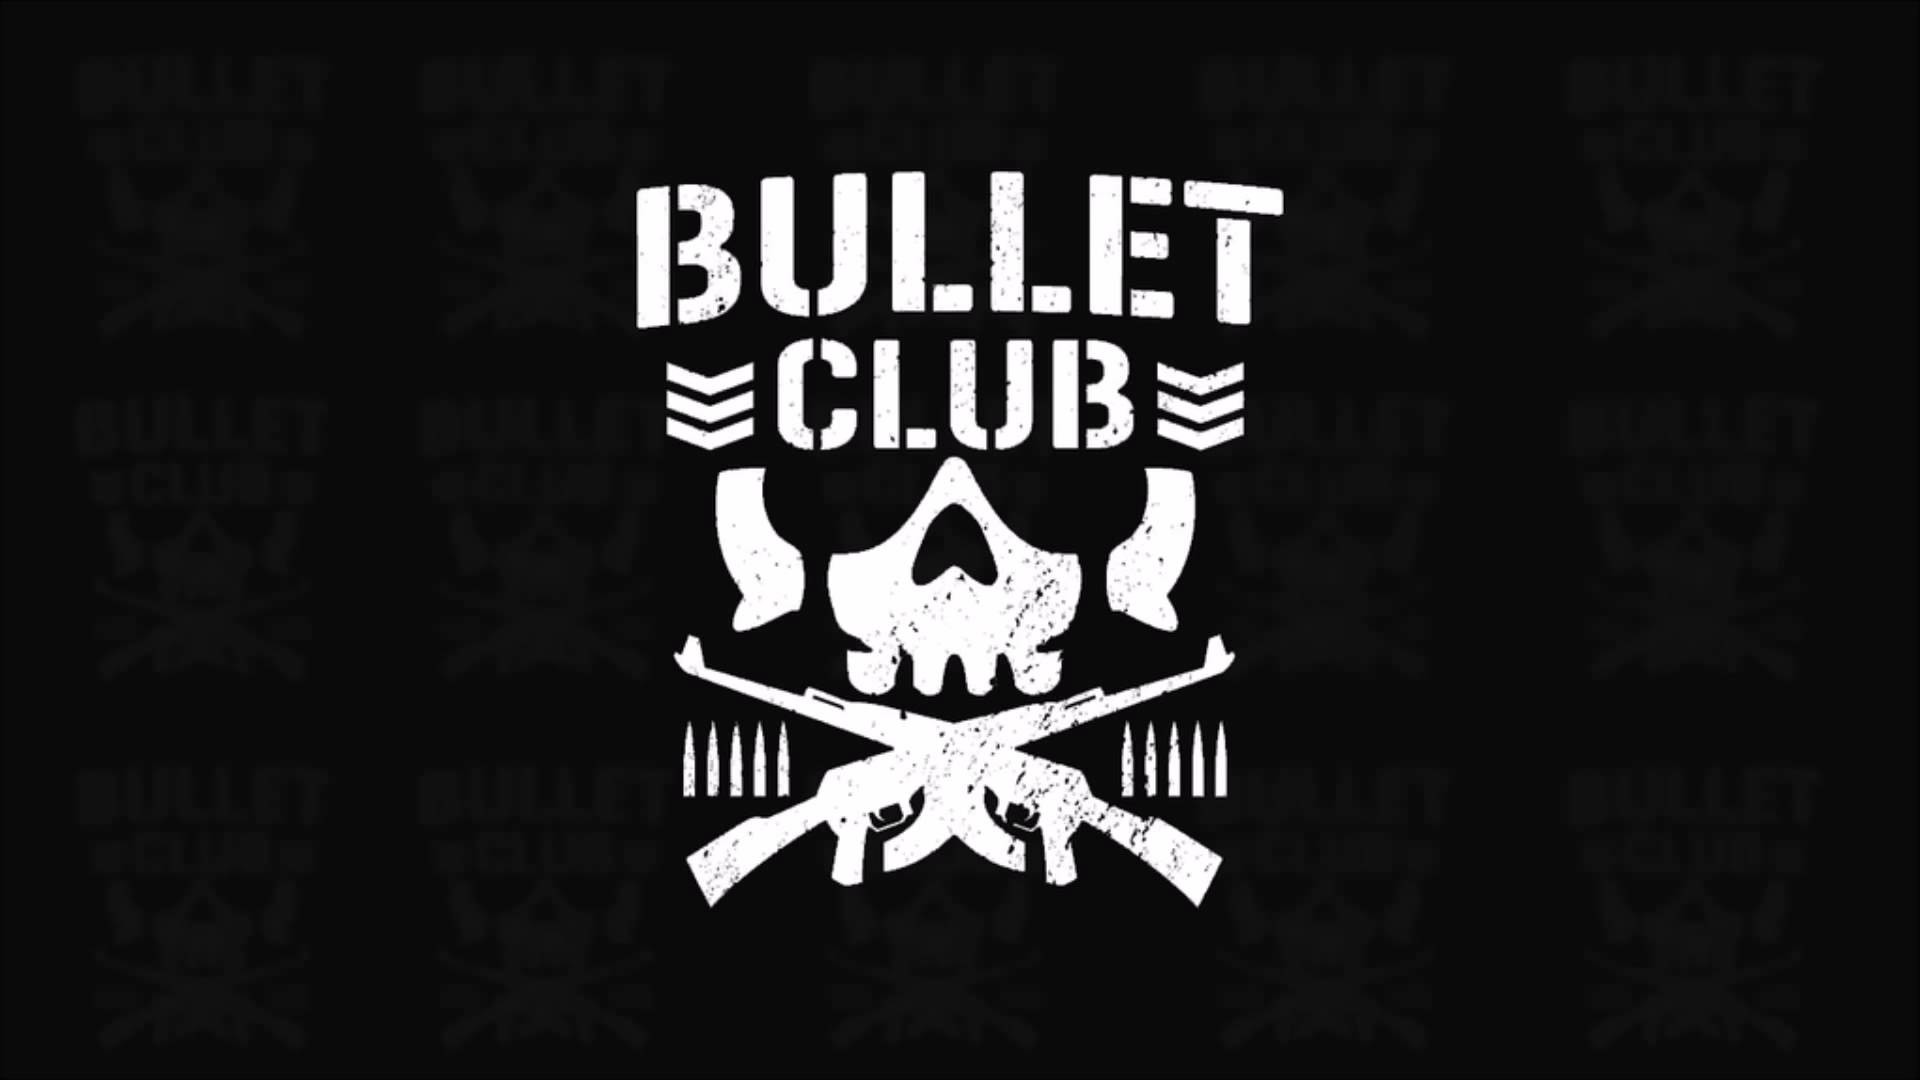 Bullet Club Wallpaper 78 Images